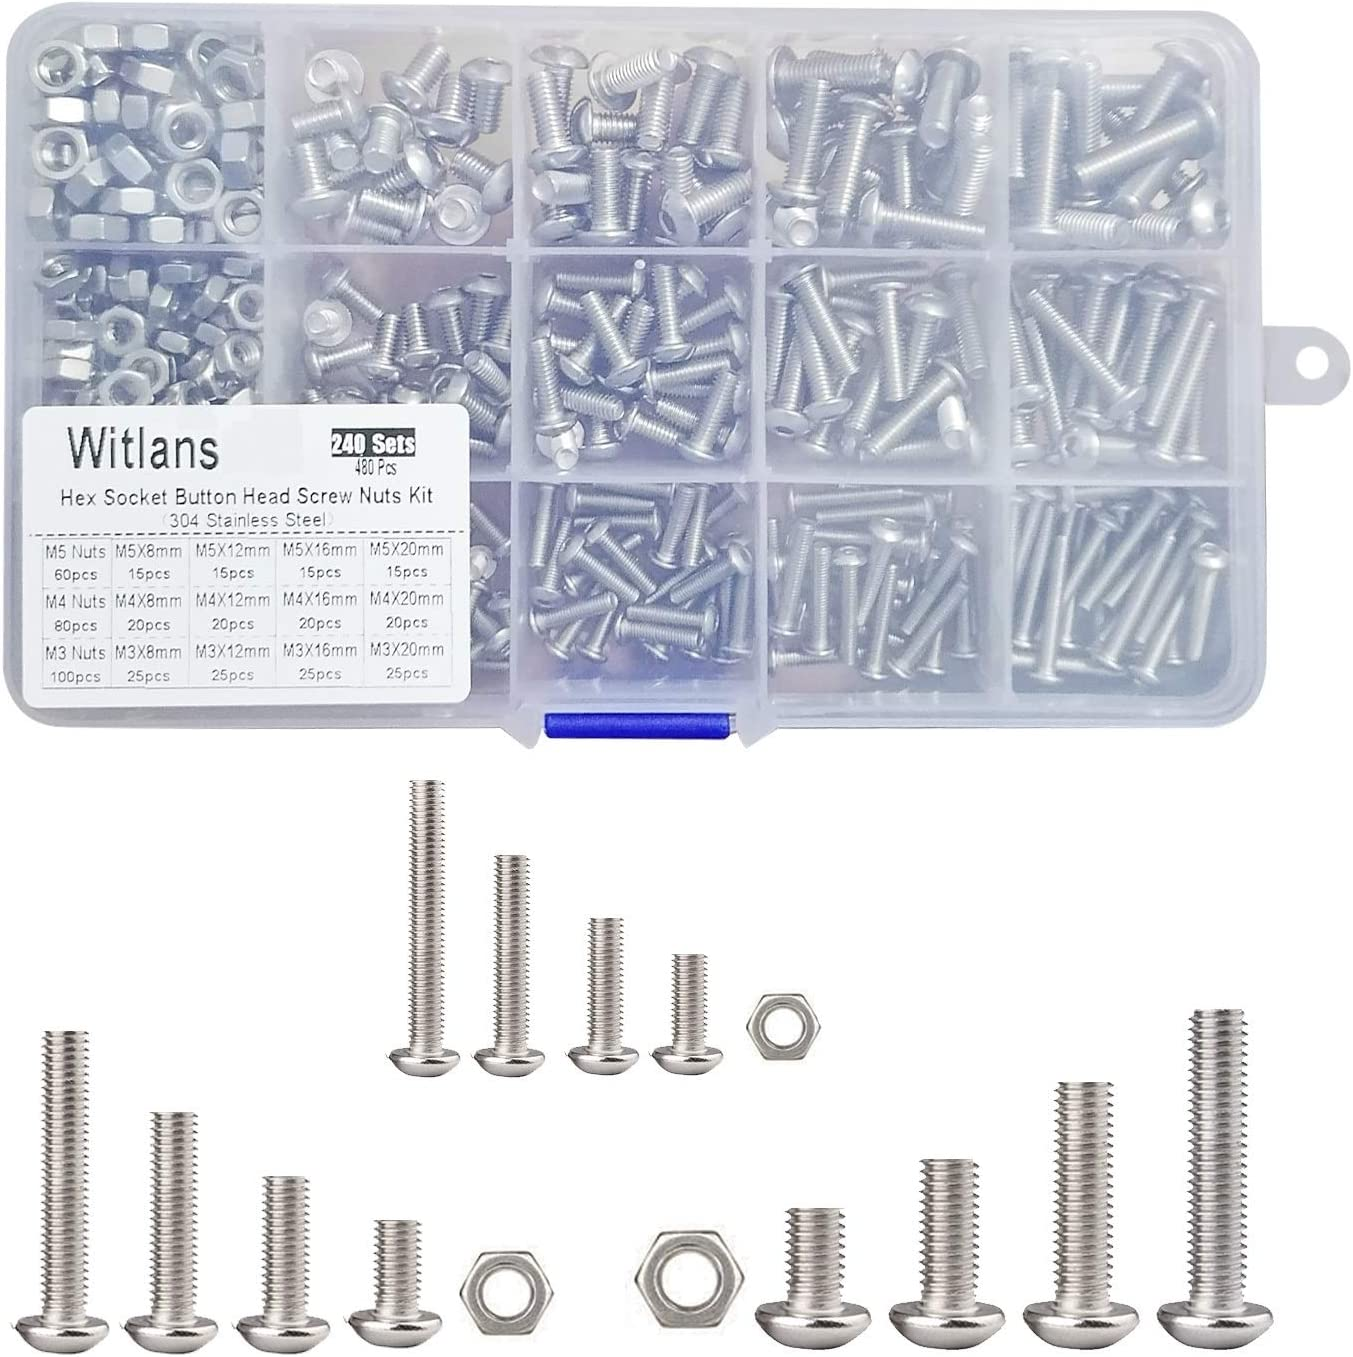 Witlans 480Pcs Hex Socket Button Head Screw Nuts Kit,Stainless Steel Hex Socket Drive Machine Screws Bolts and Nuts Assortment Set with Storage Box M3 M4 M5